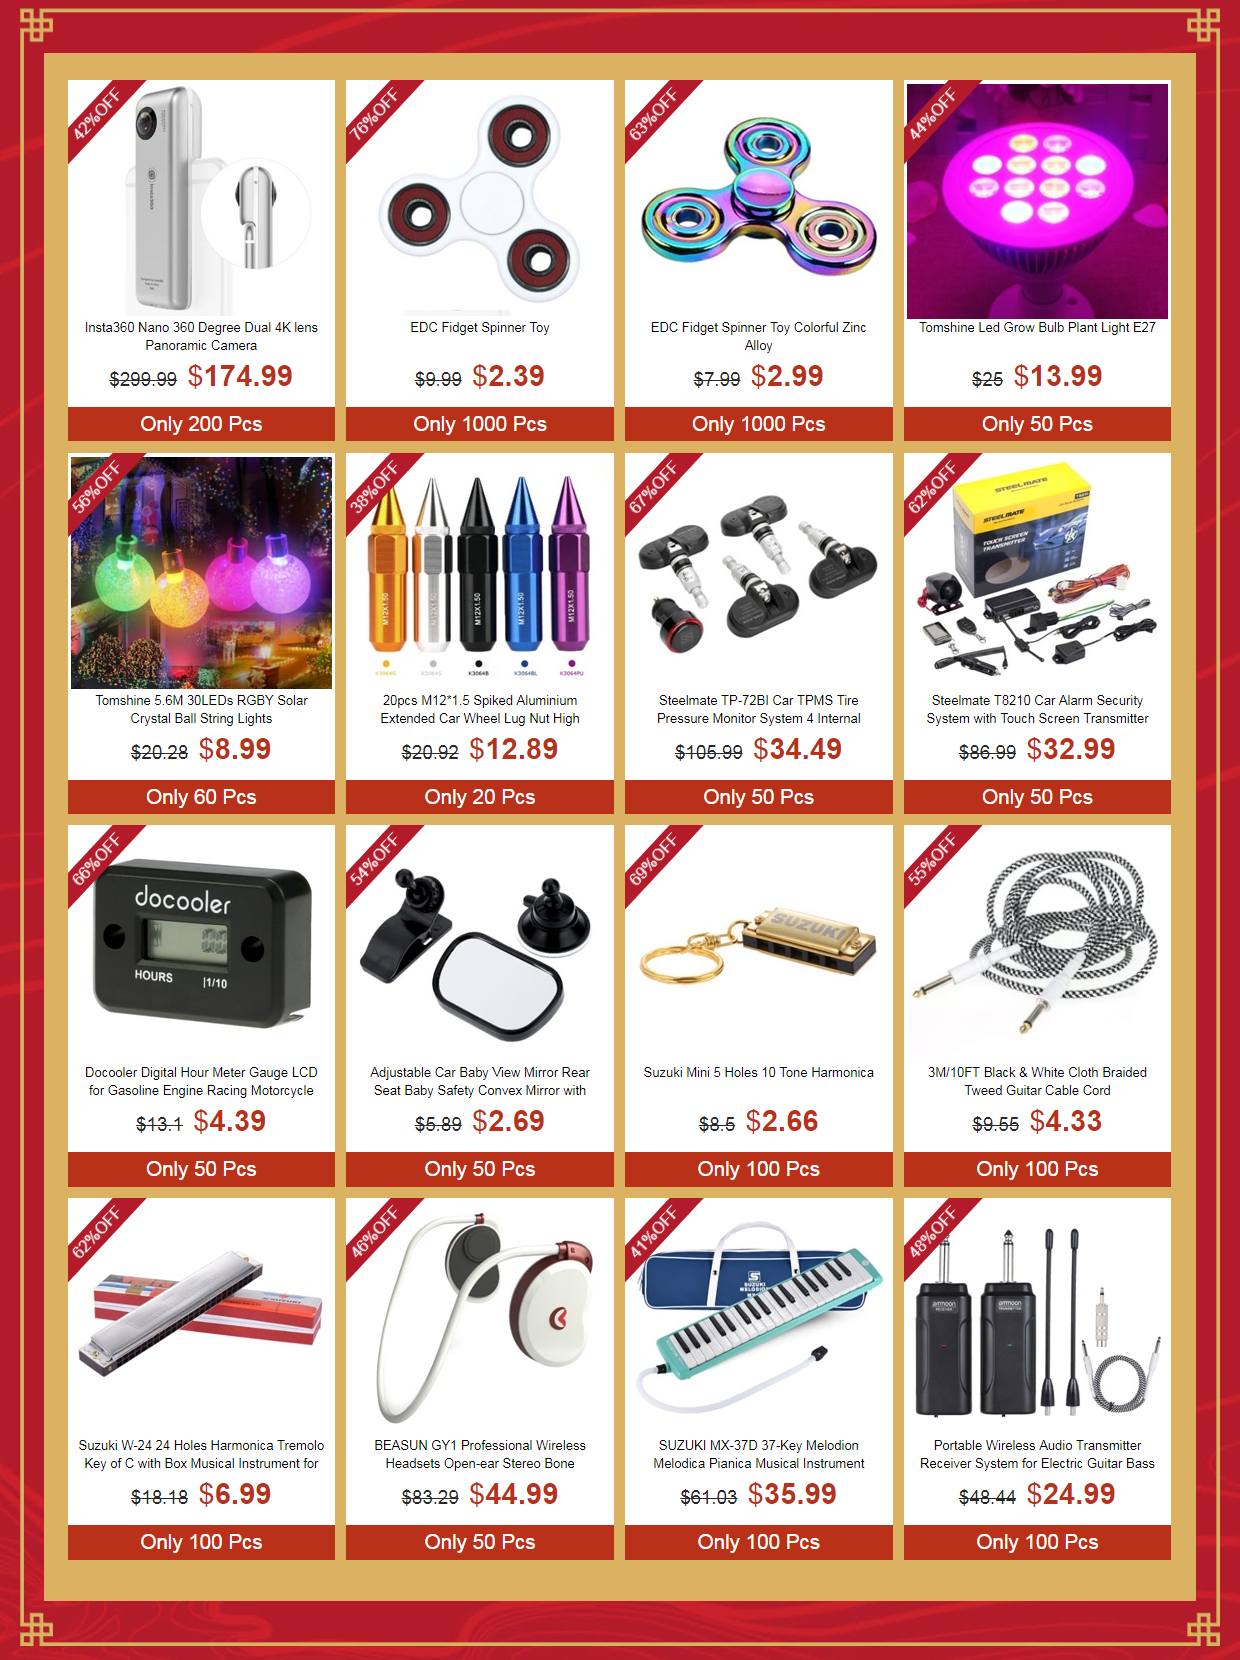 2018 New Year Unbeatable Clearance Sale, Up to 83% Off | Tomtop